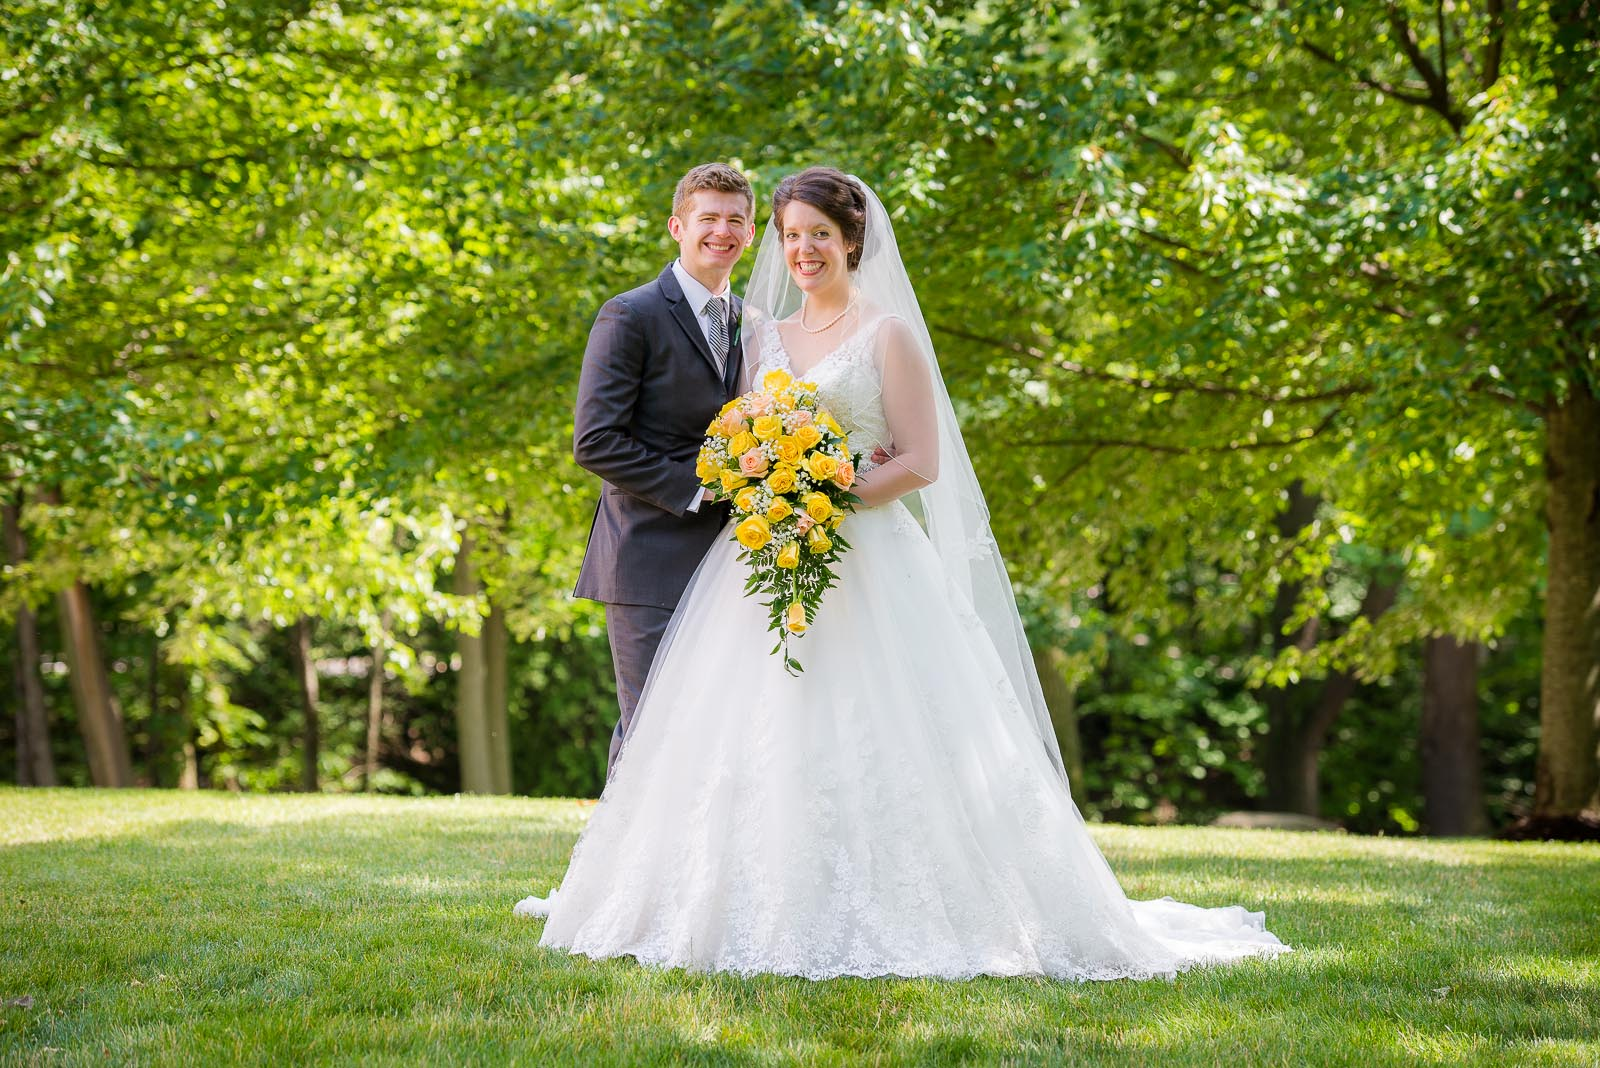 Eric_and_Christy_Photography_Blog_Wedding_Kelly_Michael-25